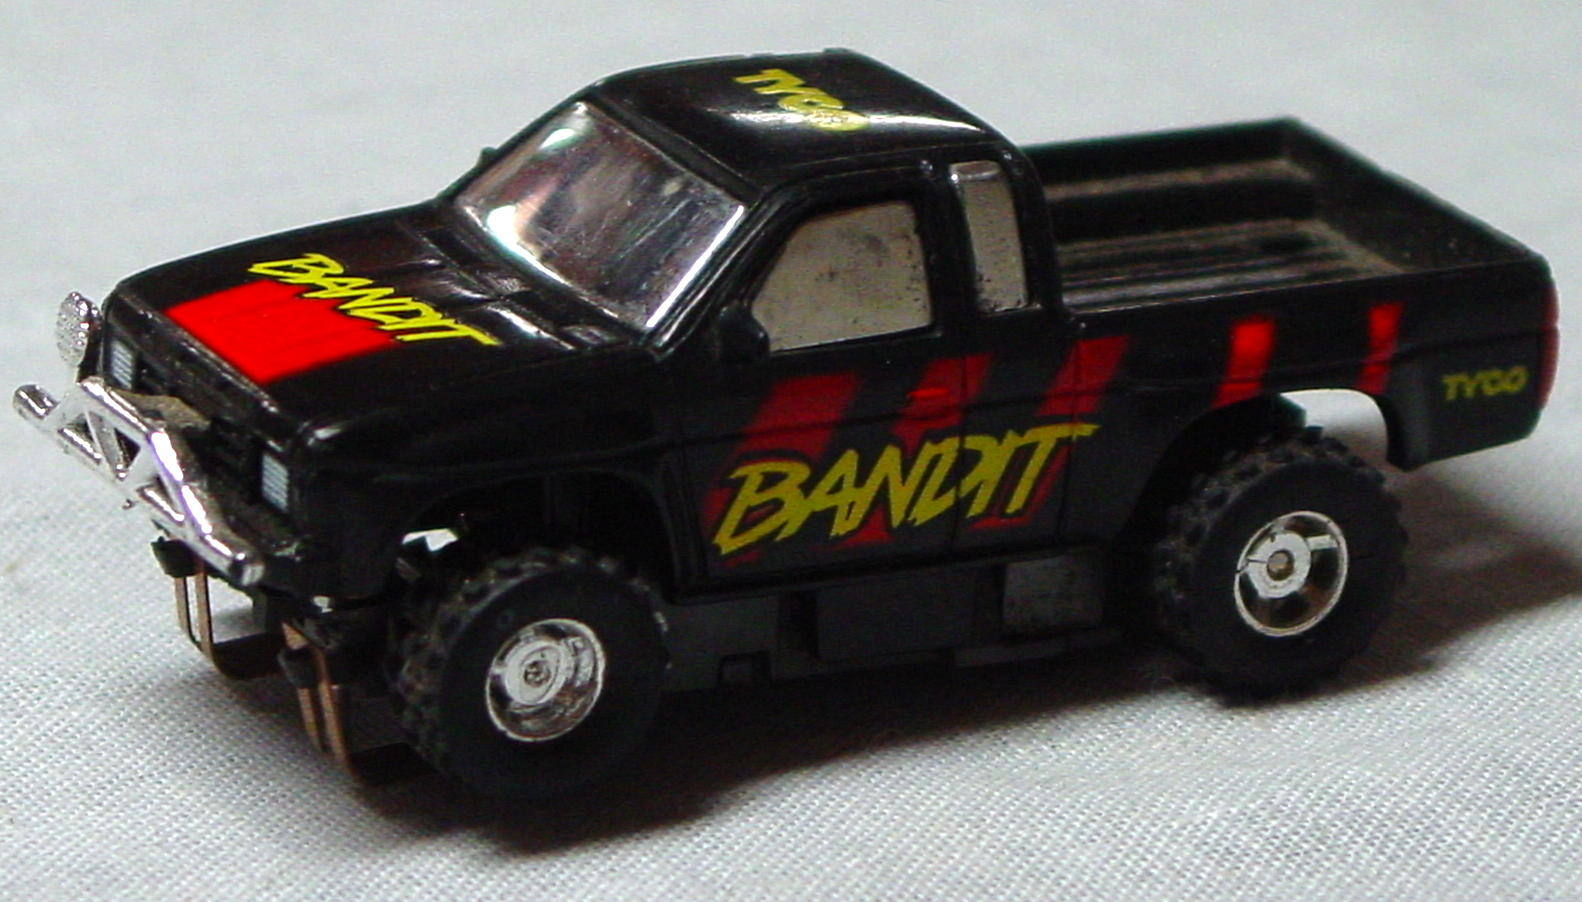 64 - SLOT TYCO Nissan 4x4 Bandit -roll cage